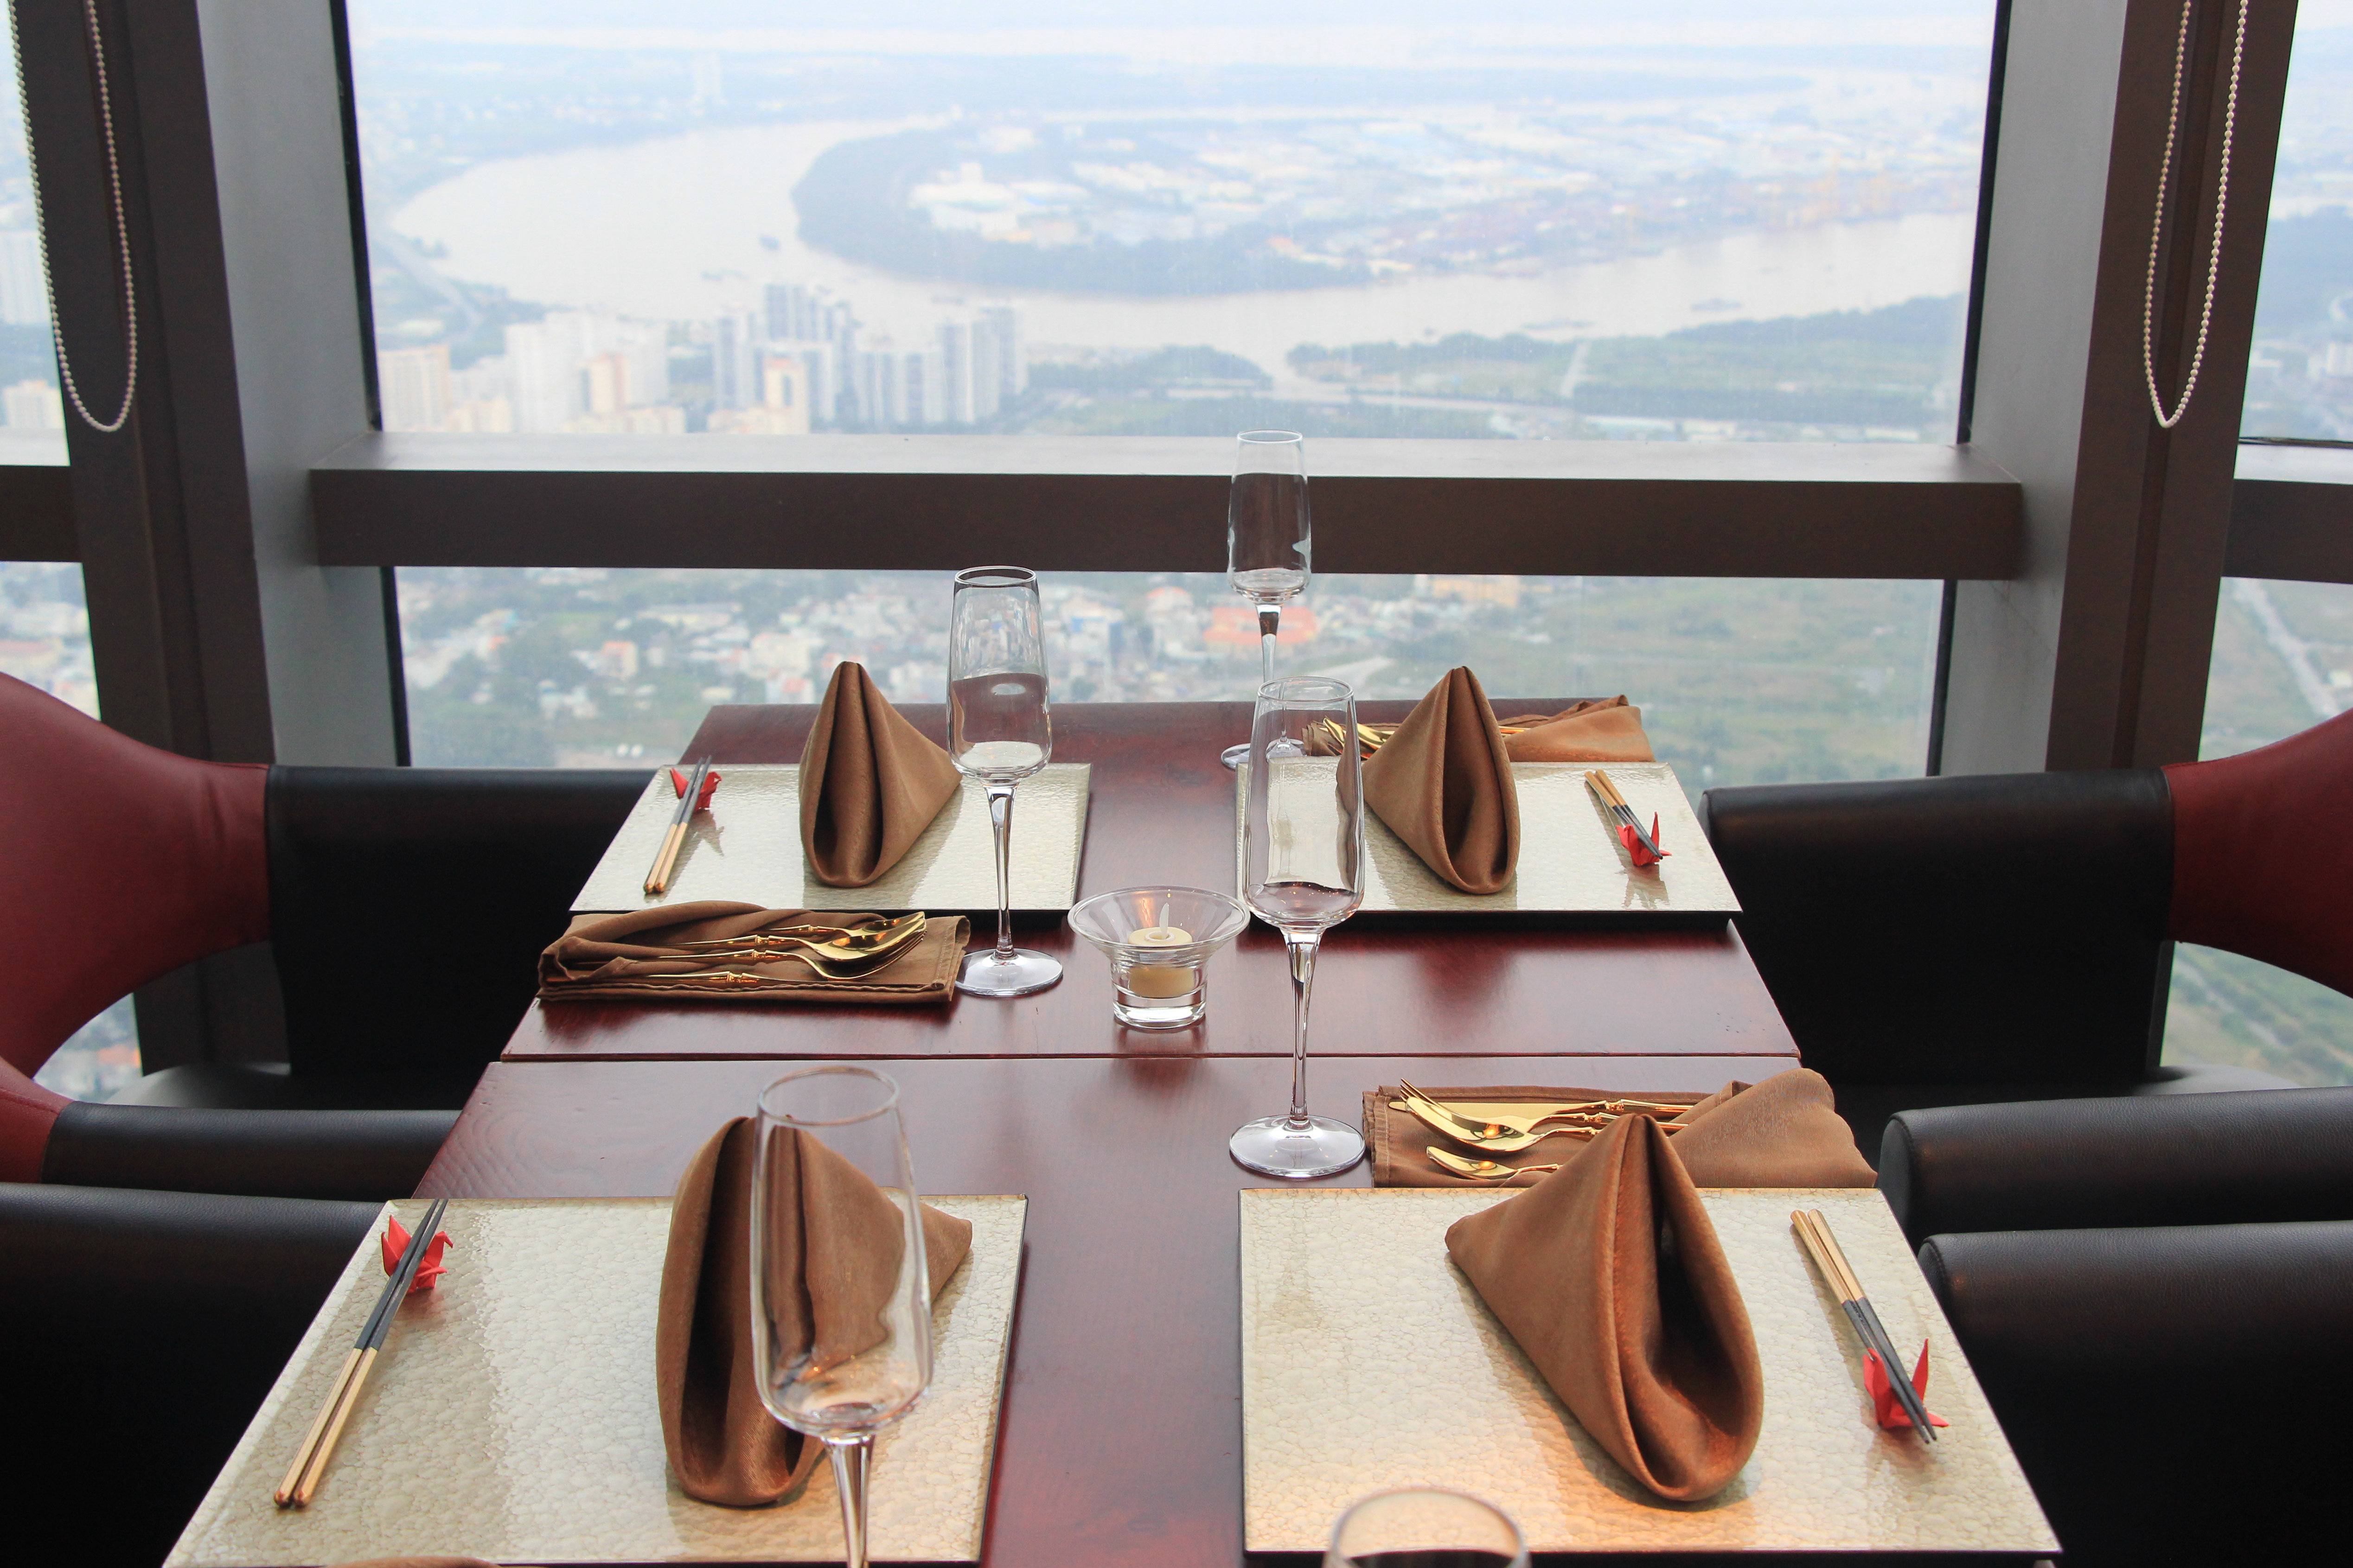 Dining tools displayed at Miwaku Premium Restaurant on the 80th floor at the 81-story Landmark 81 in Ho Chi Minh City's Binh Thanh District is seen in this photo taken on October 22, 2020. Photo: Dong Nguyen/ Tuoi Tre News